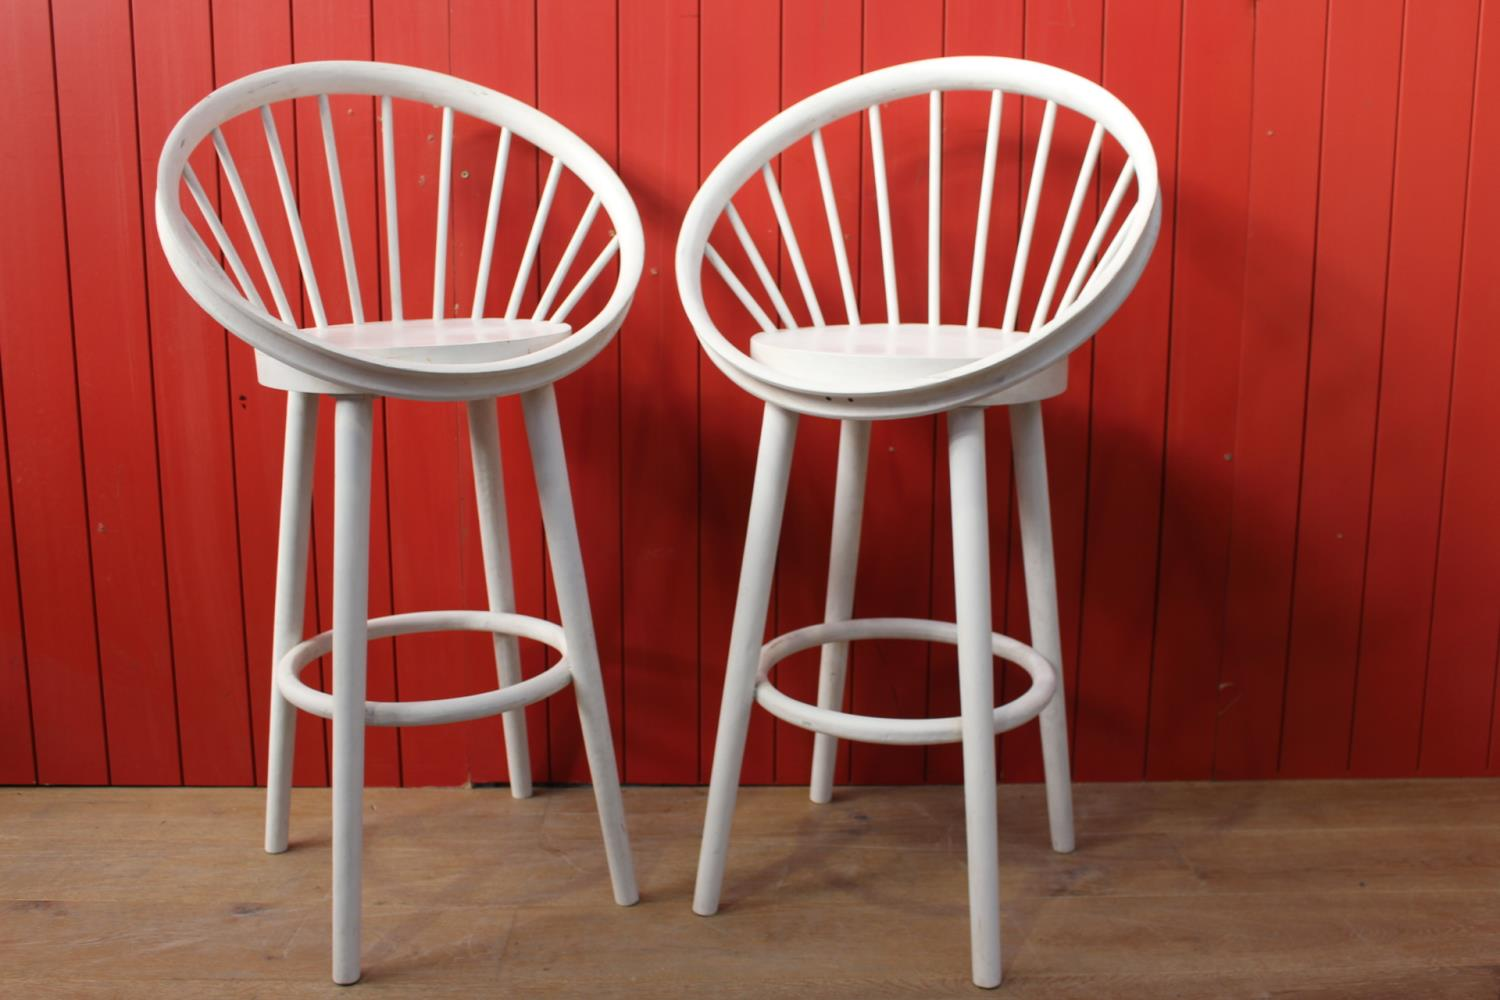 Pair of white spindle backed high stools